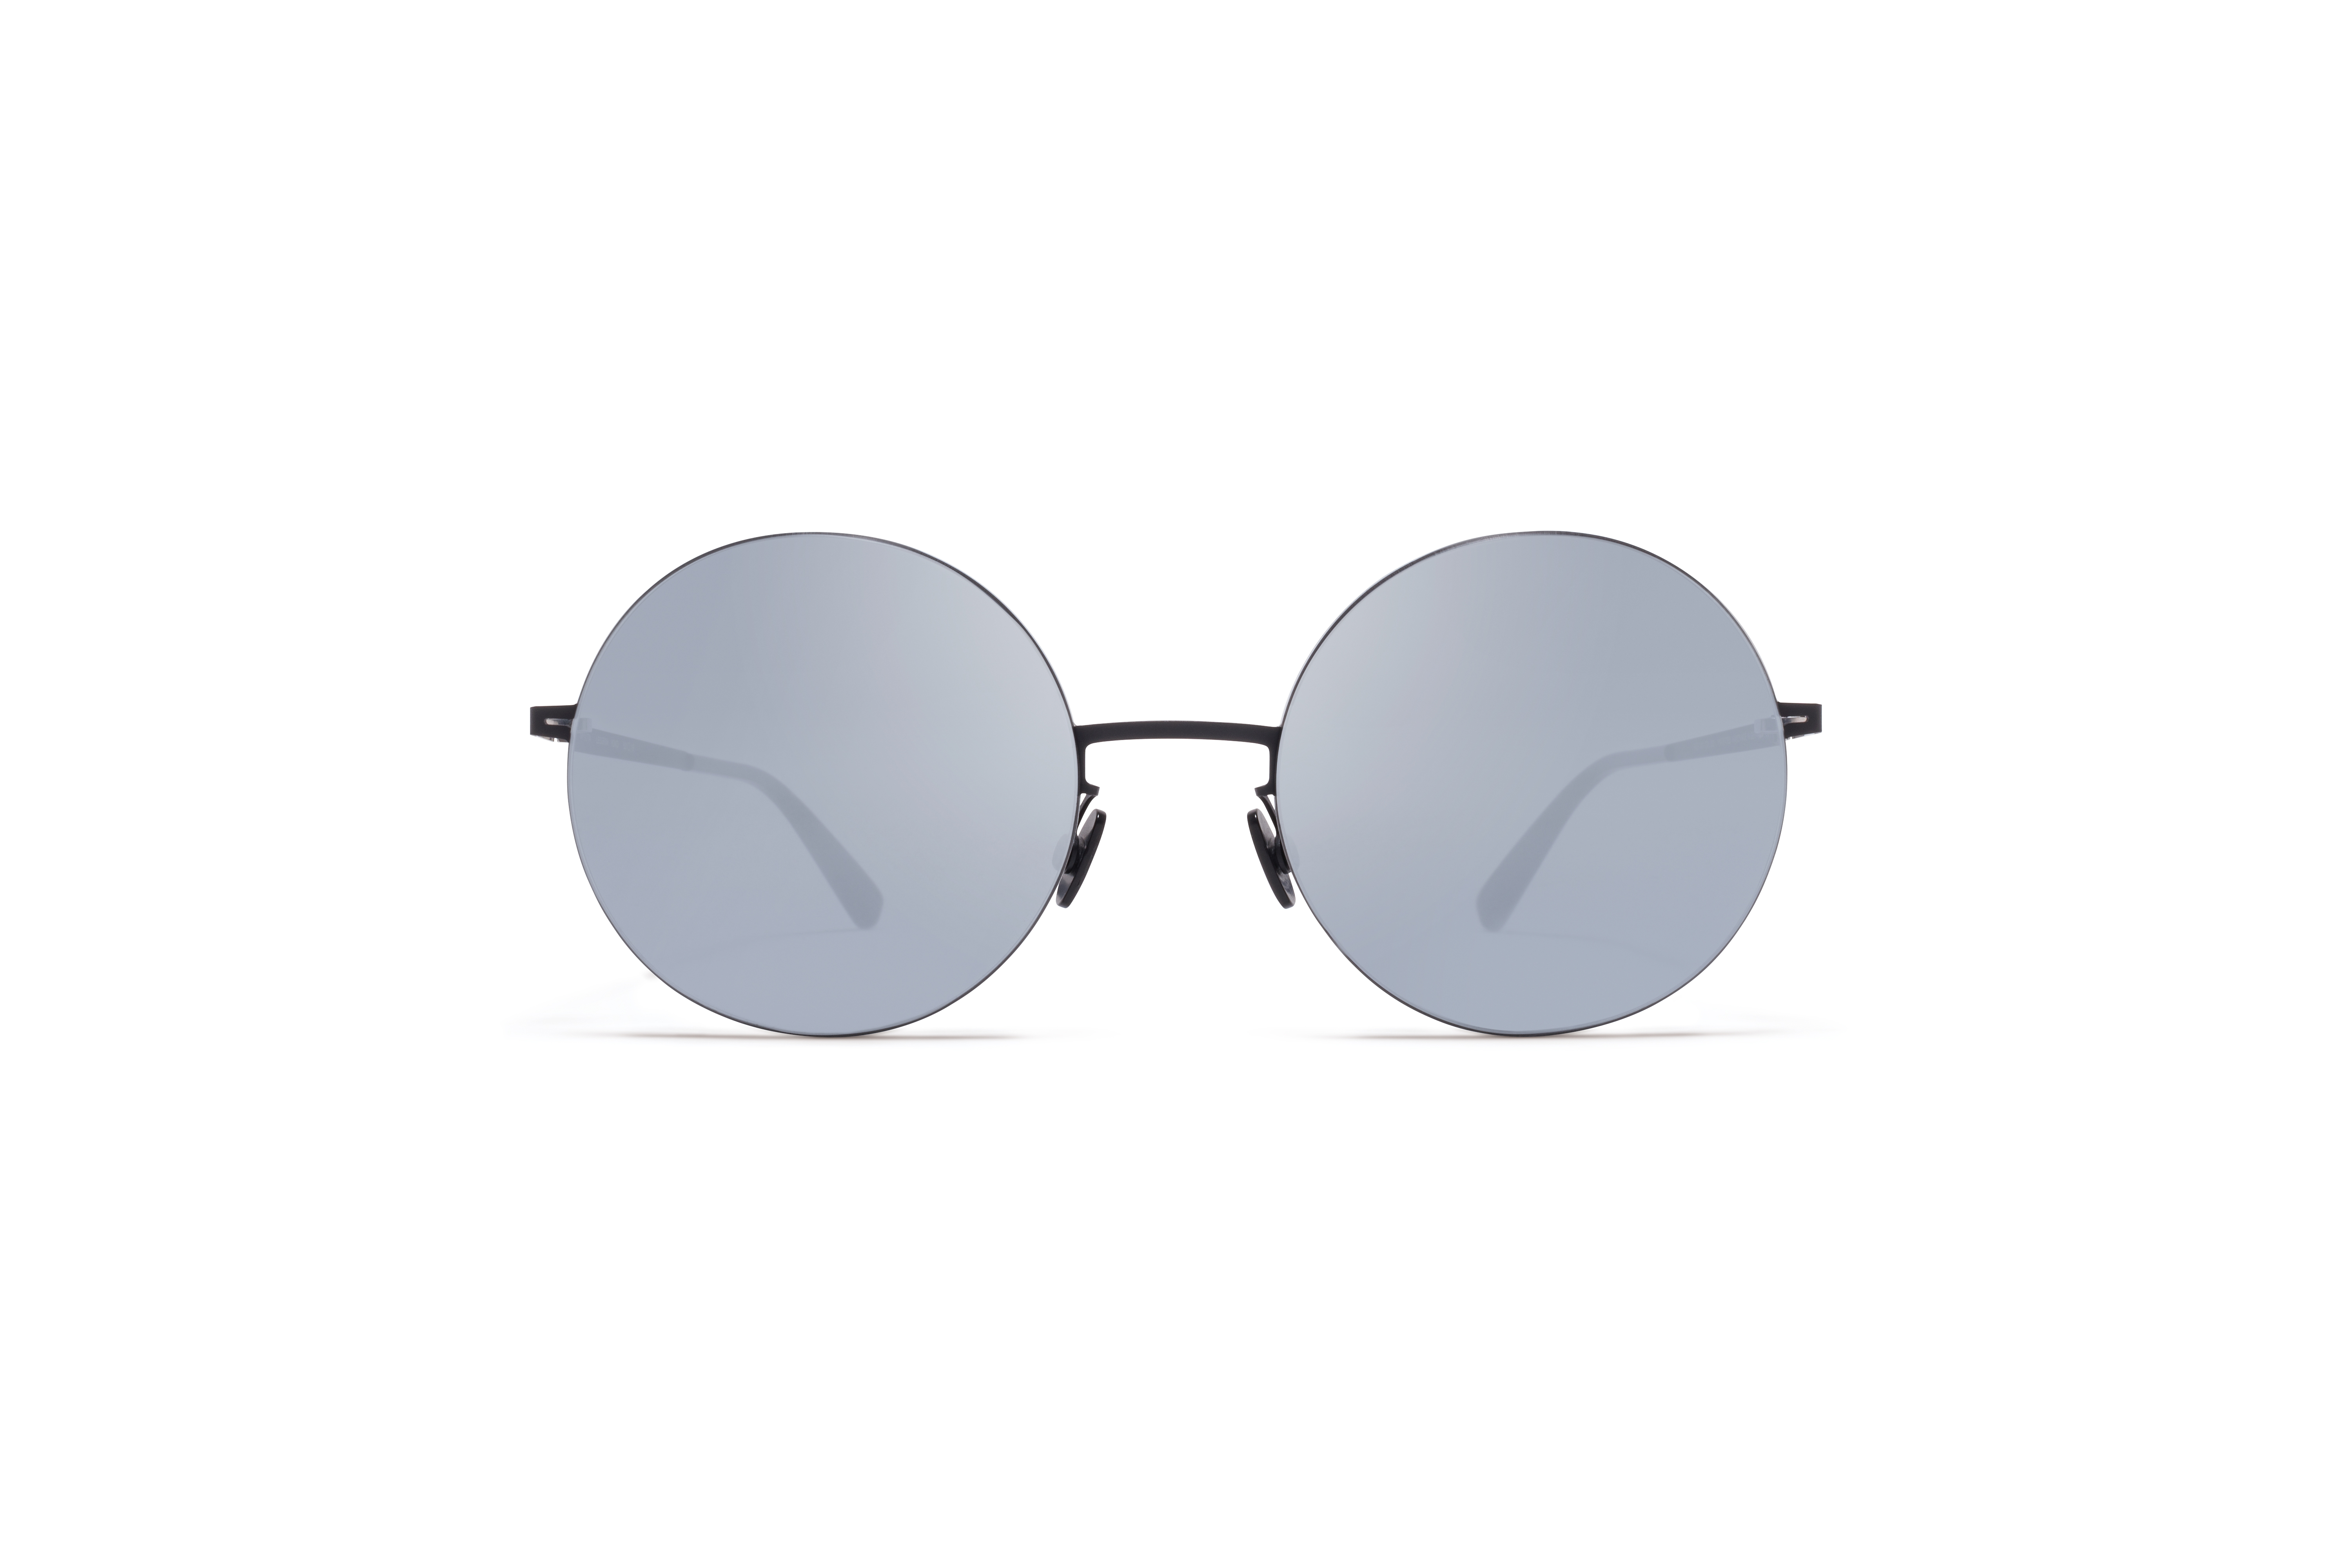 MYKITA Less Rim Sun Yoko Silver Black Silver Flash